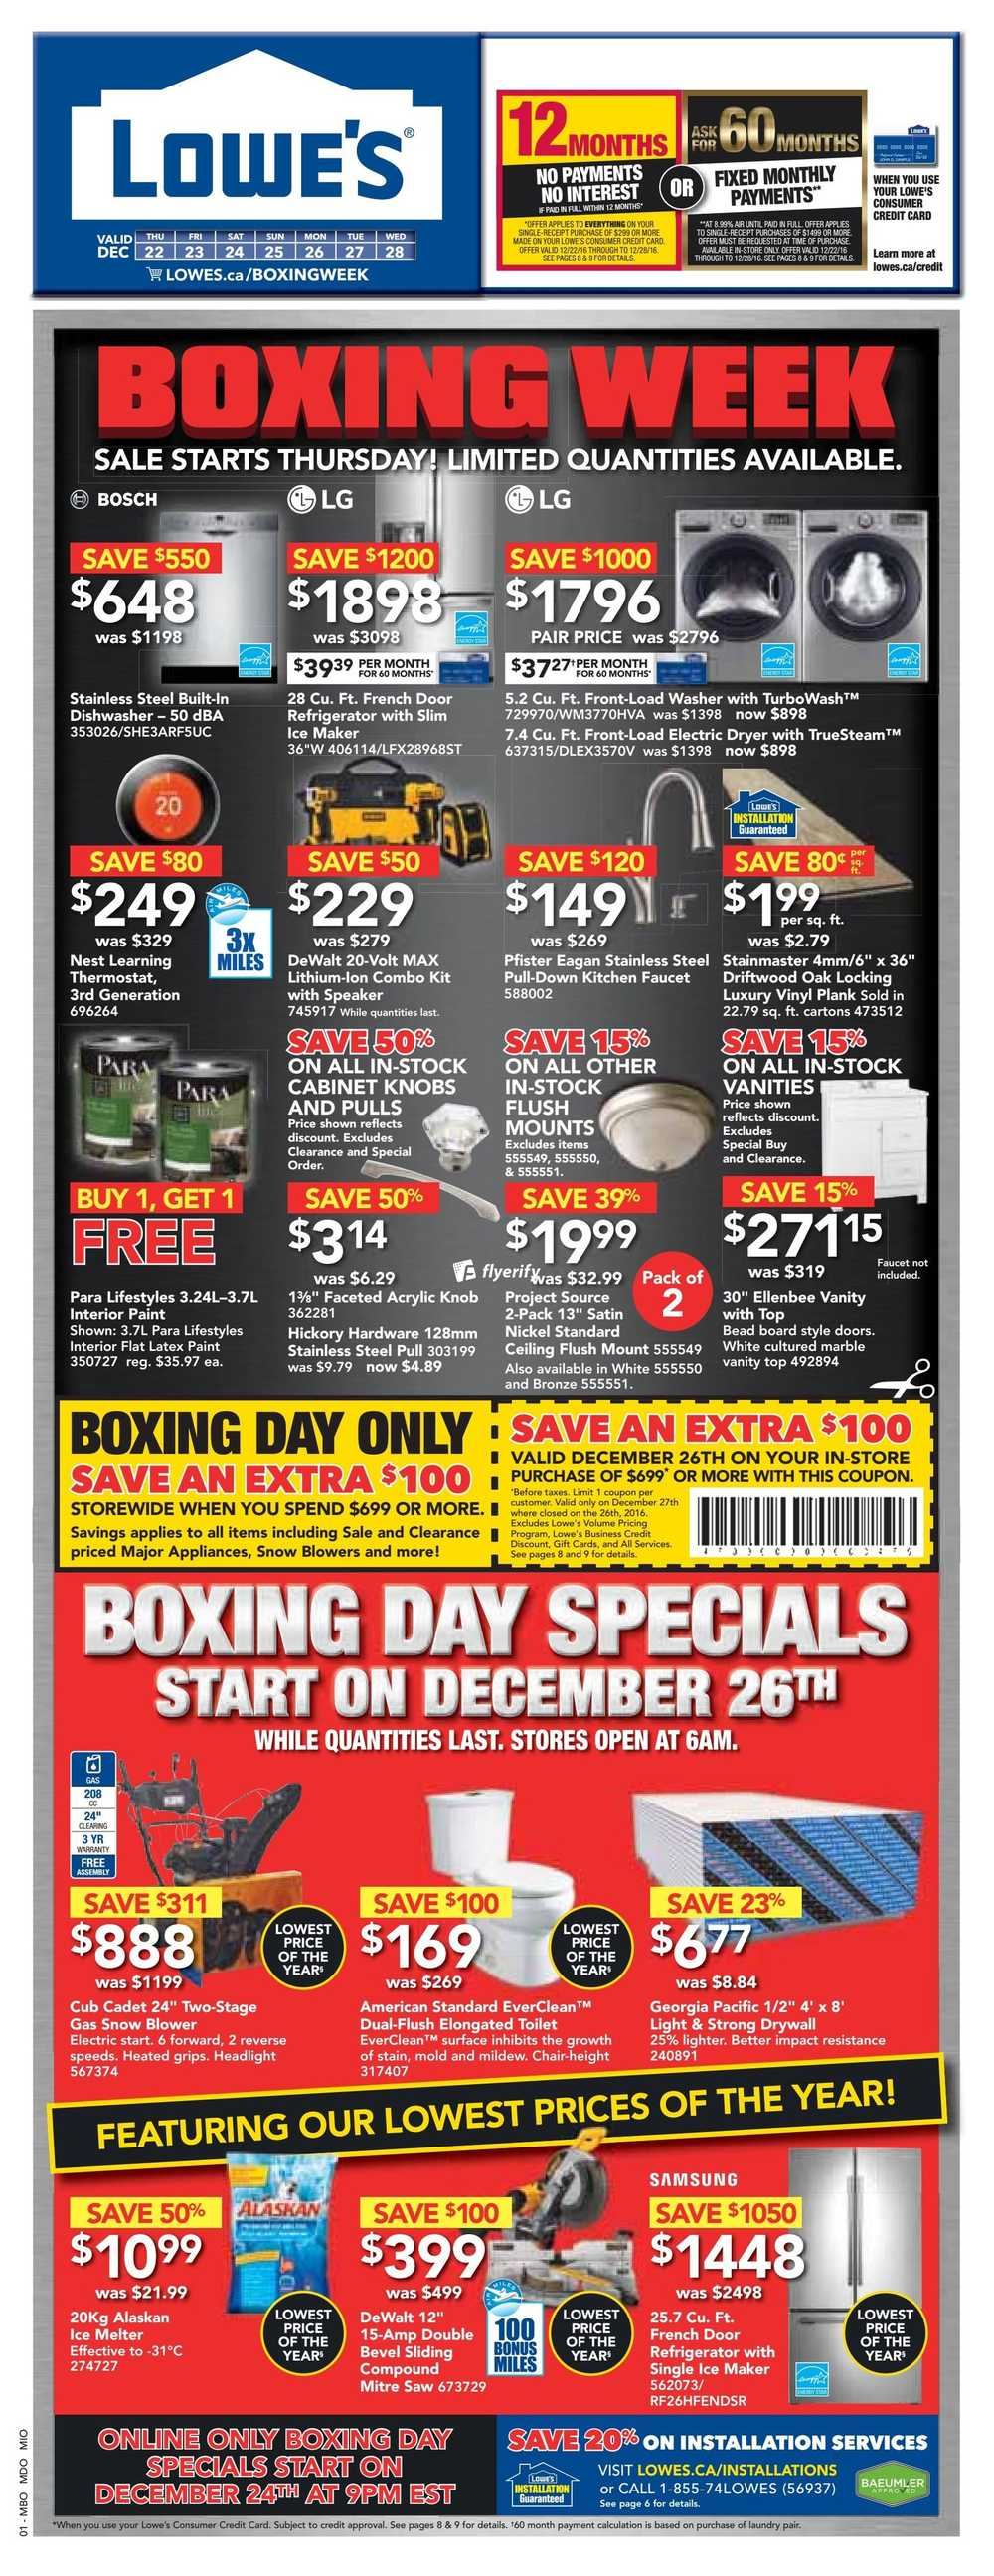 Lowe S Boxing Week Sale Flyer December 22 To 28 2016 Canada